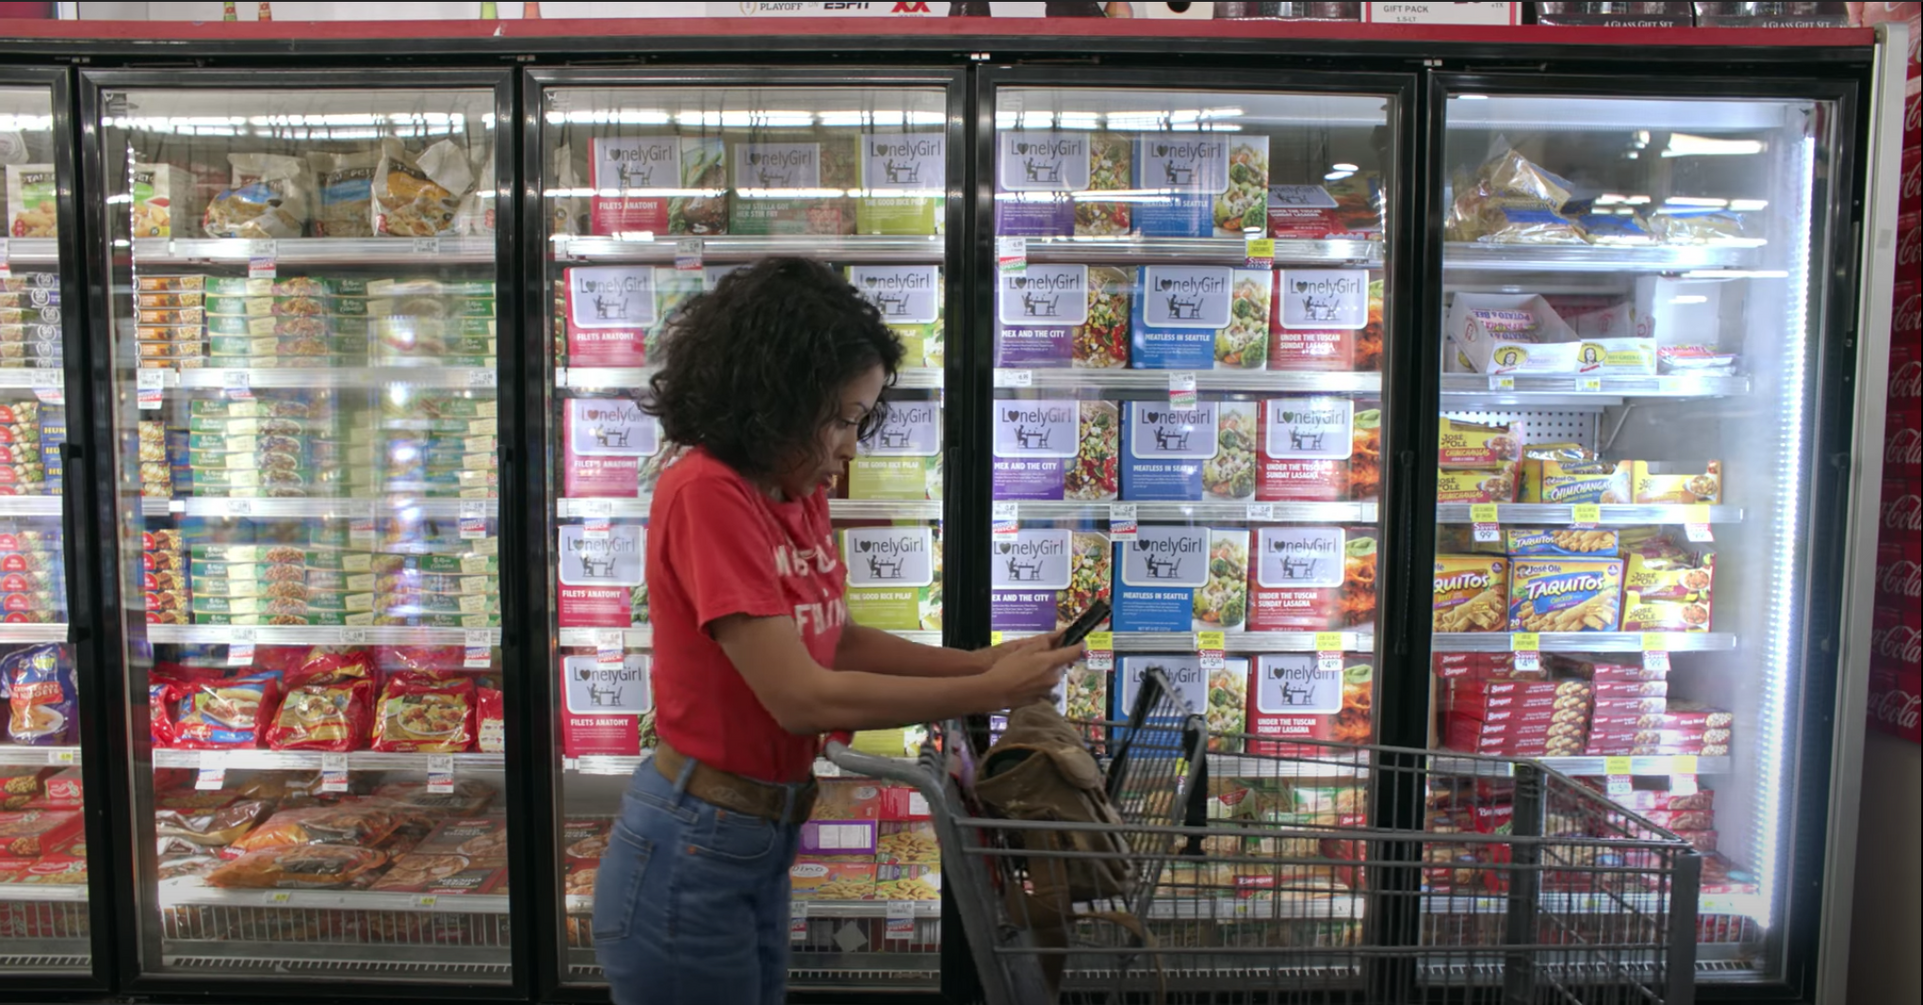 Production Still of Grocery Aisle